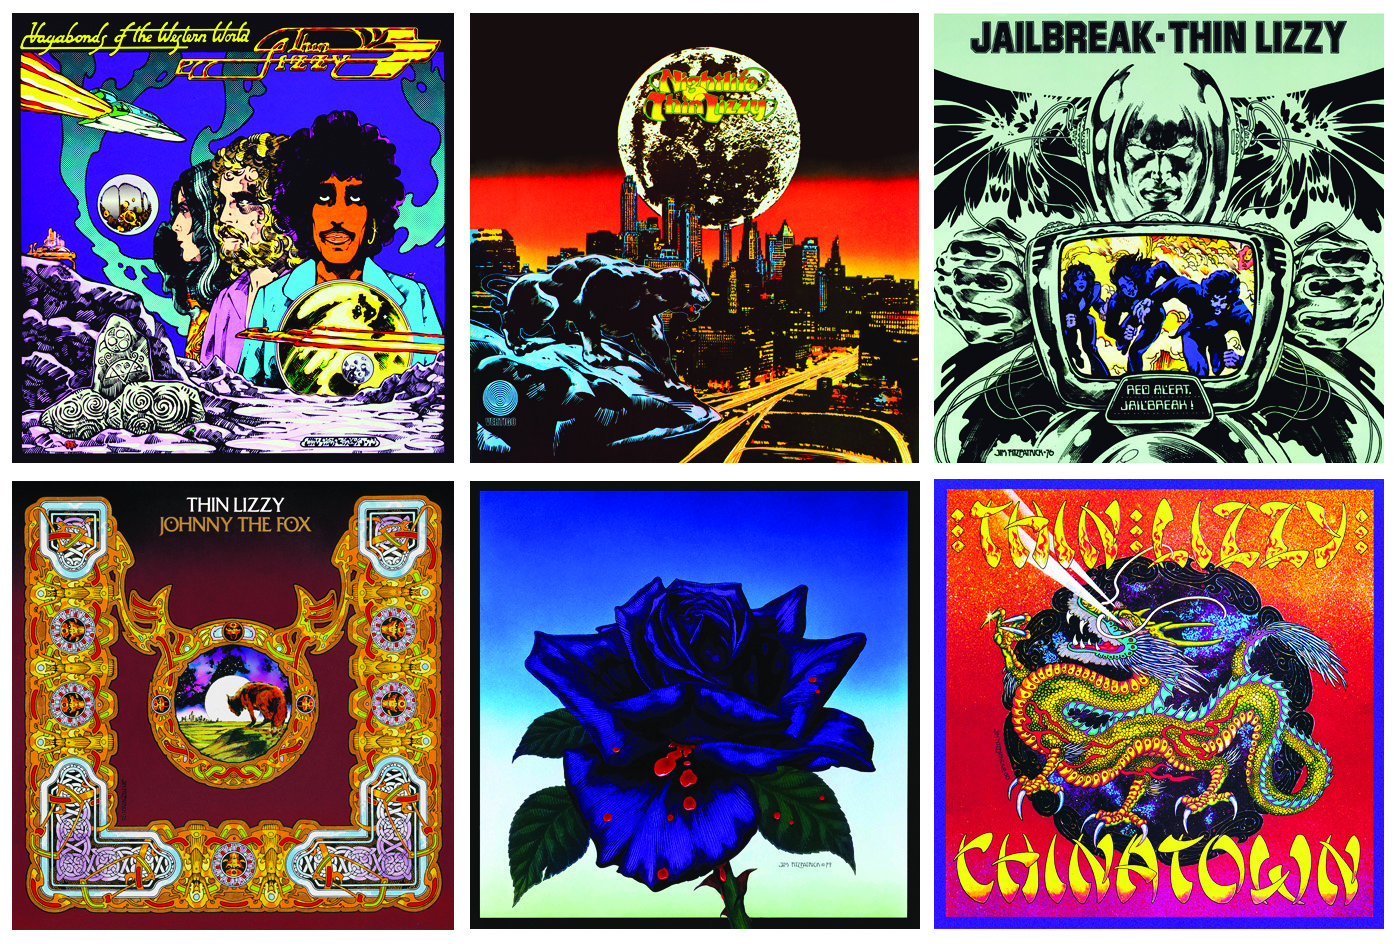 Thin Lizzy, Thin Lizzy album cover,